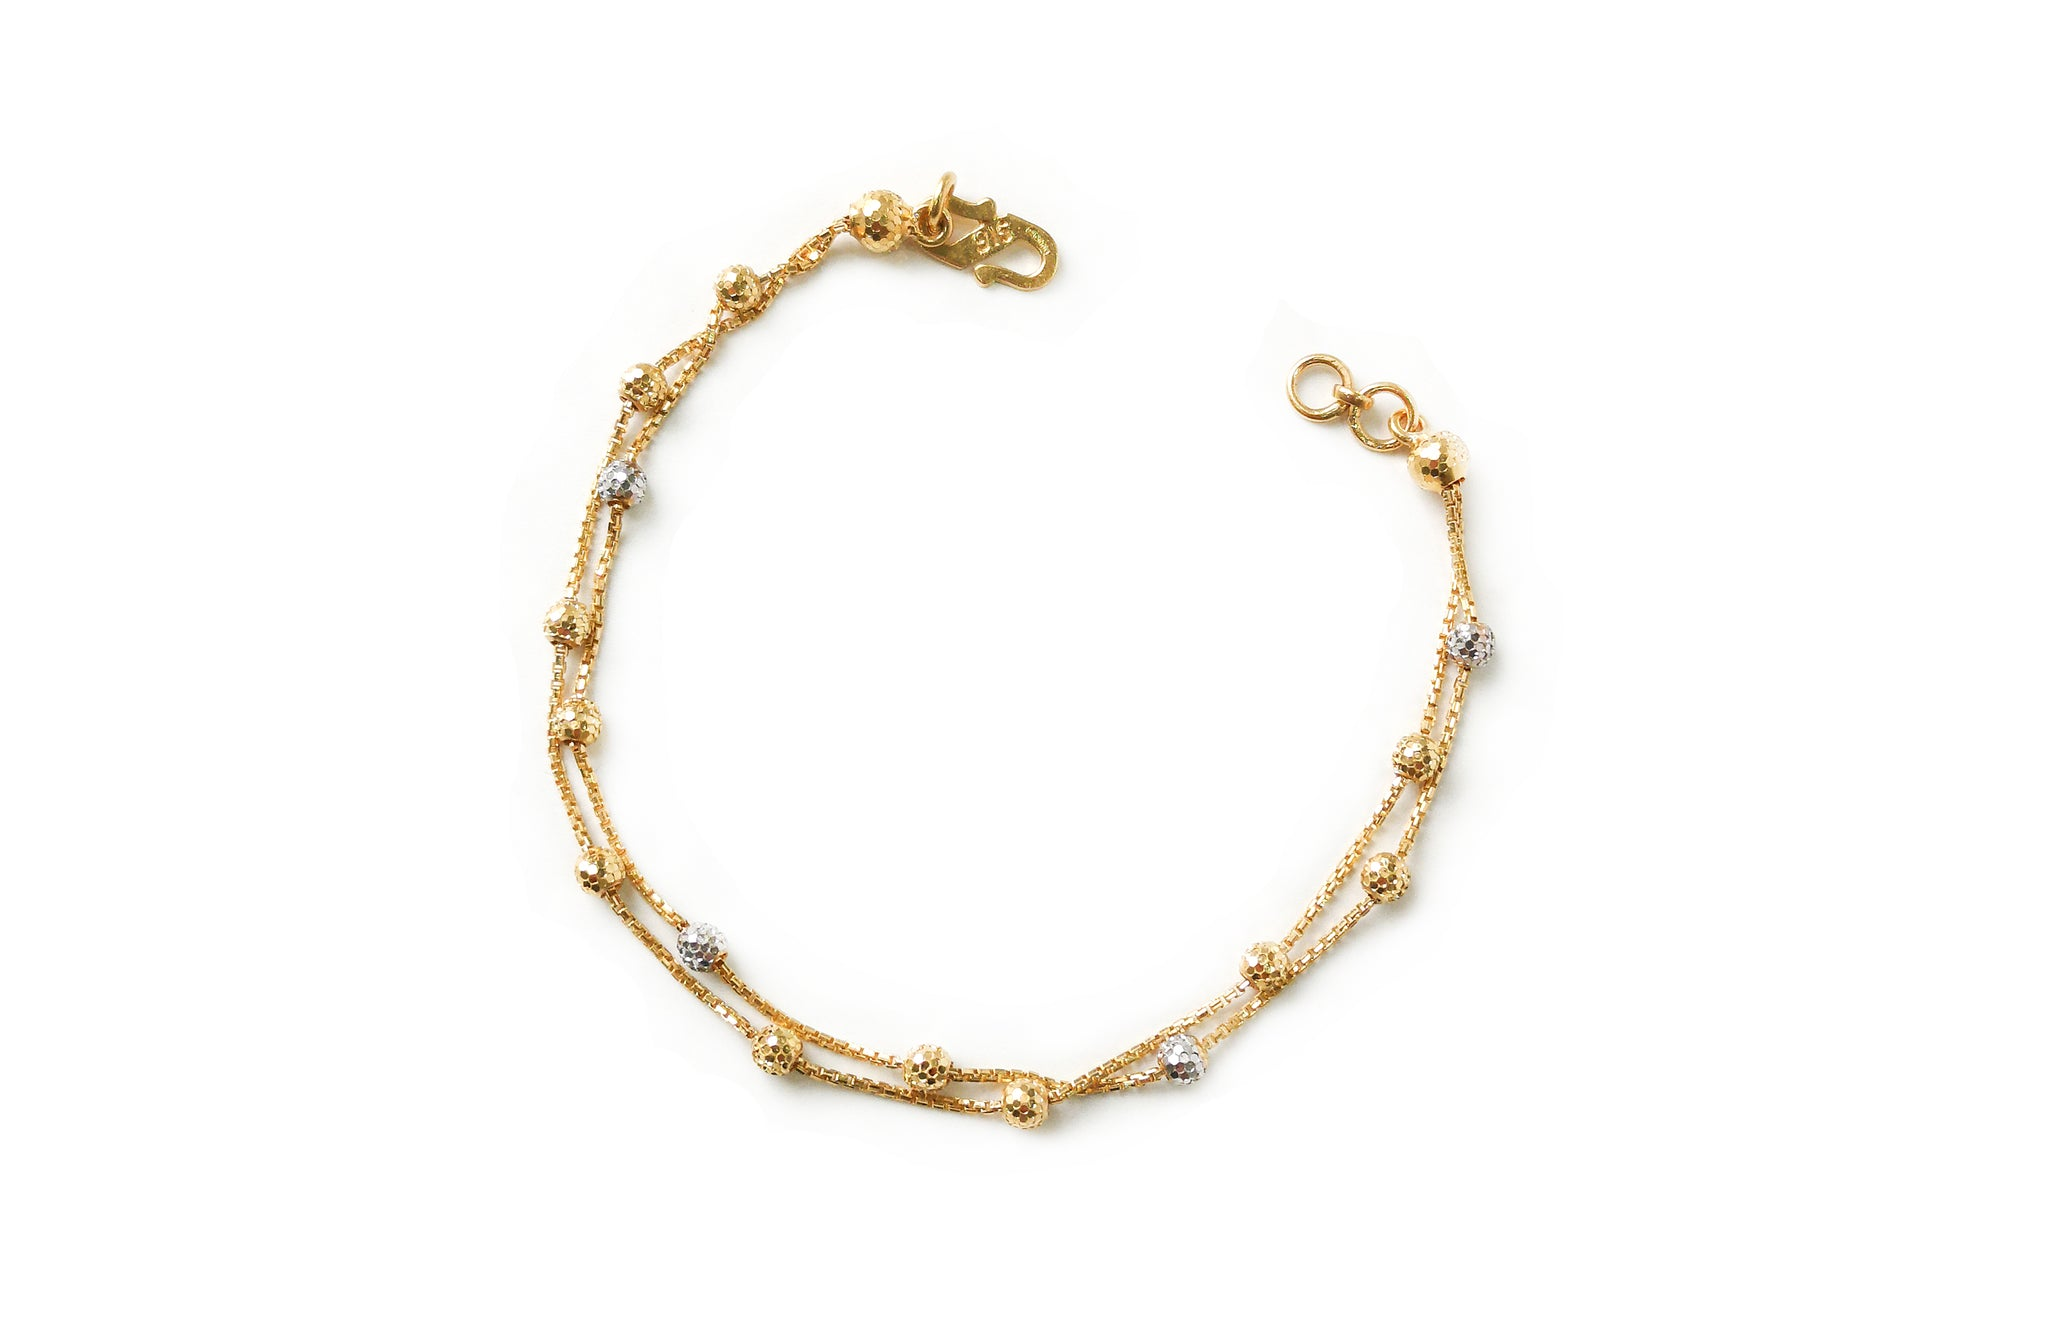 22ct Gold Two Strand Bracelet with Diamond Cut and Rhodium Design (4.3g) LBR-7669